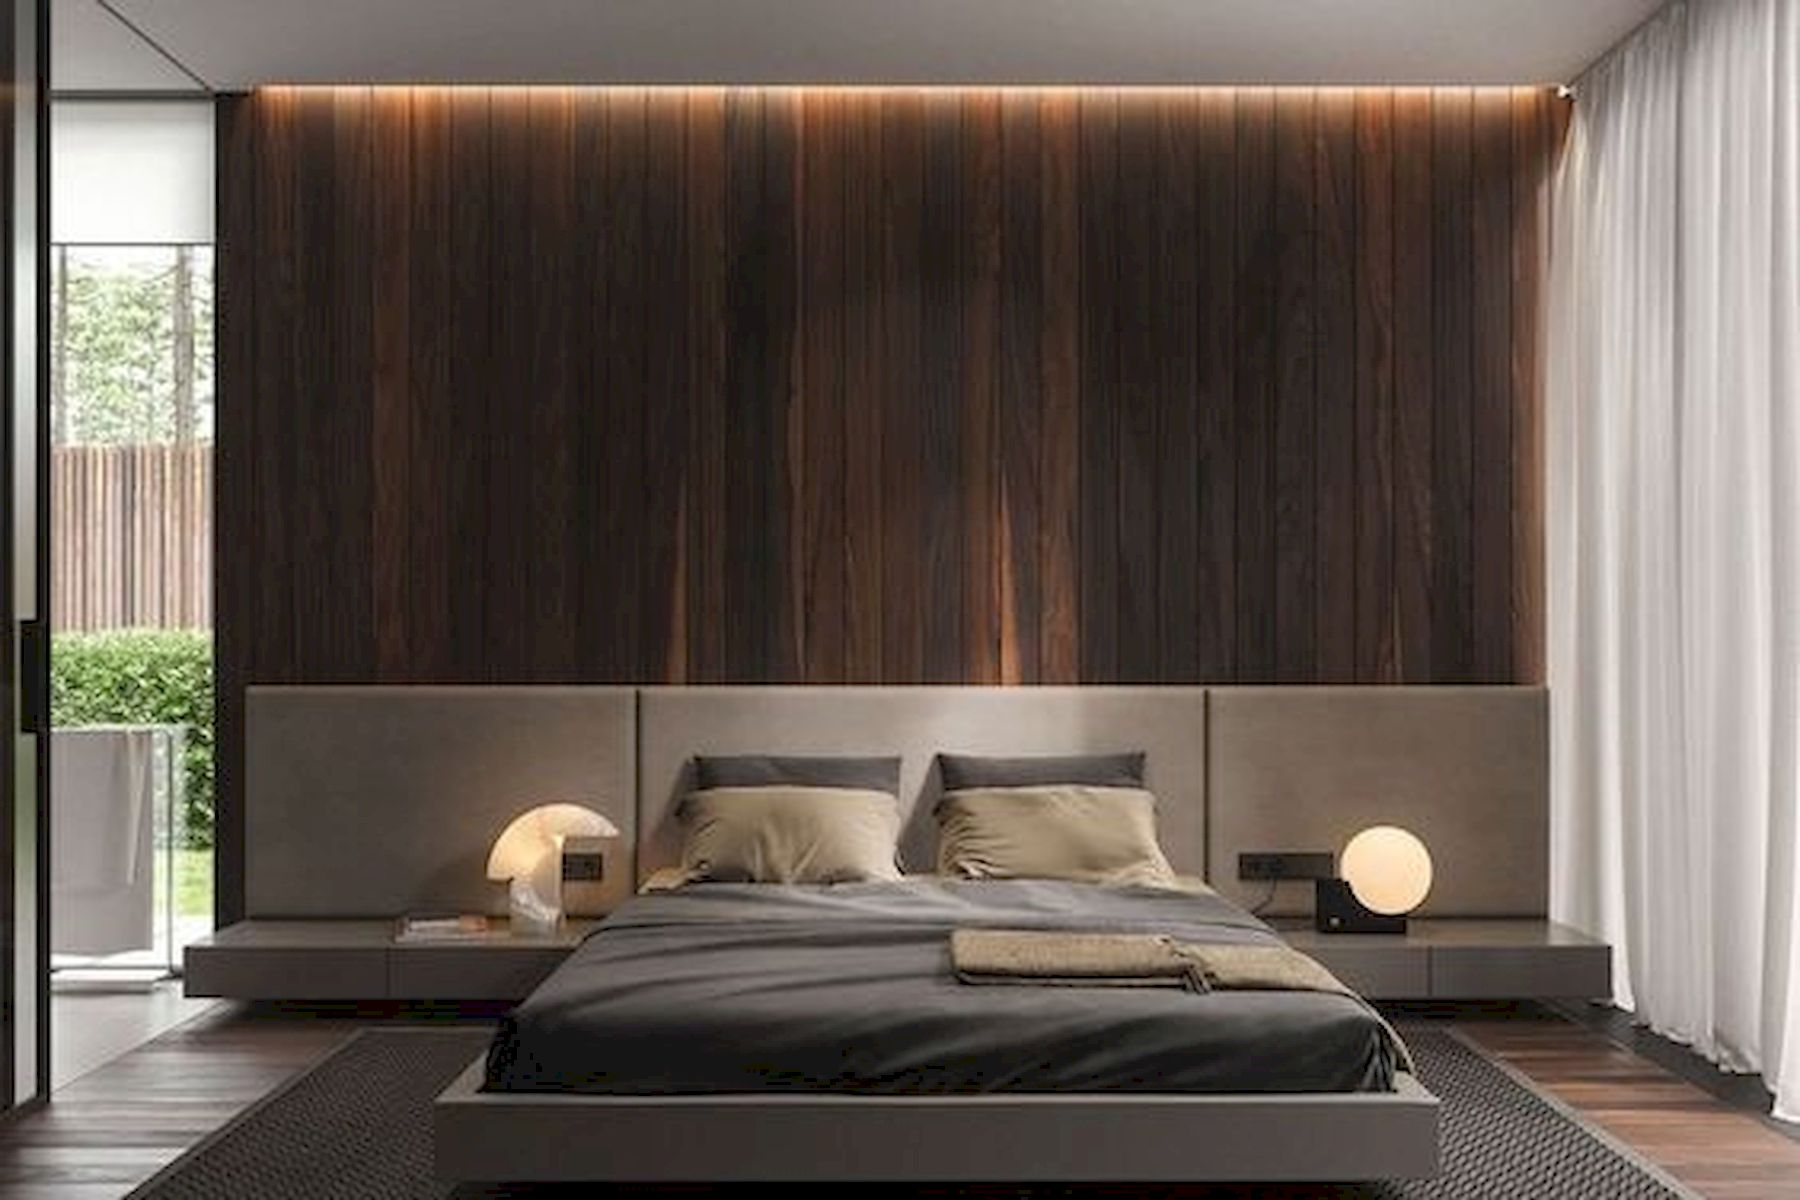 40 Incredible Modern Bedroom Design Ideas That Will Be Relax Place (17)